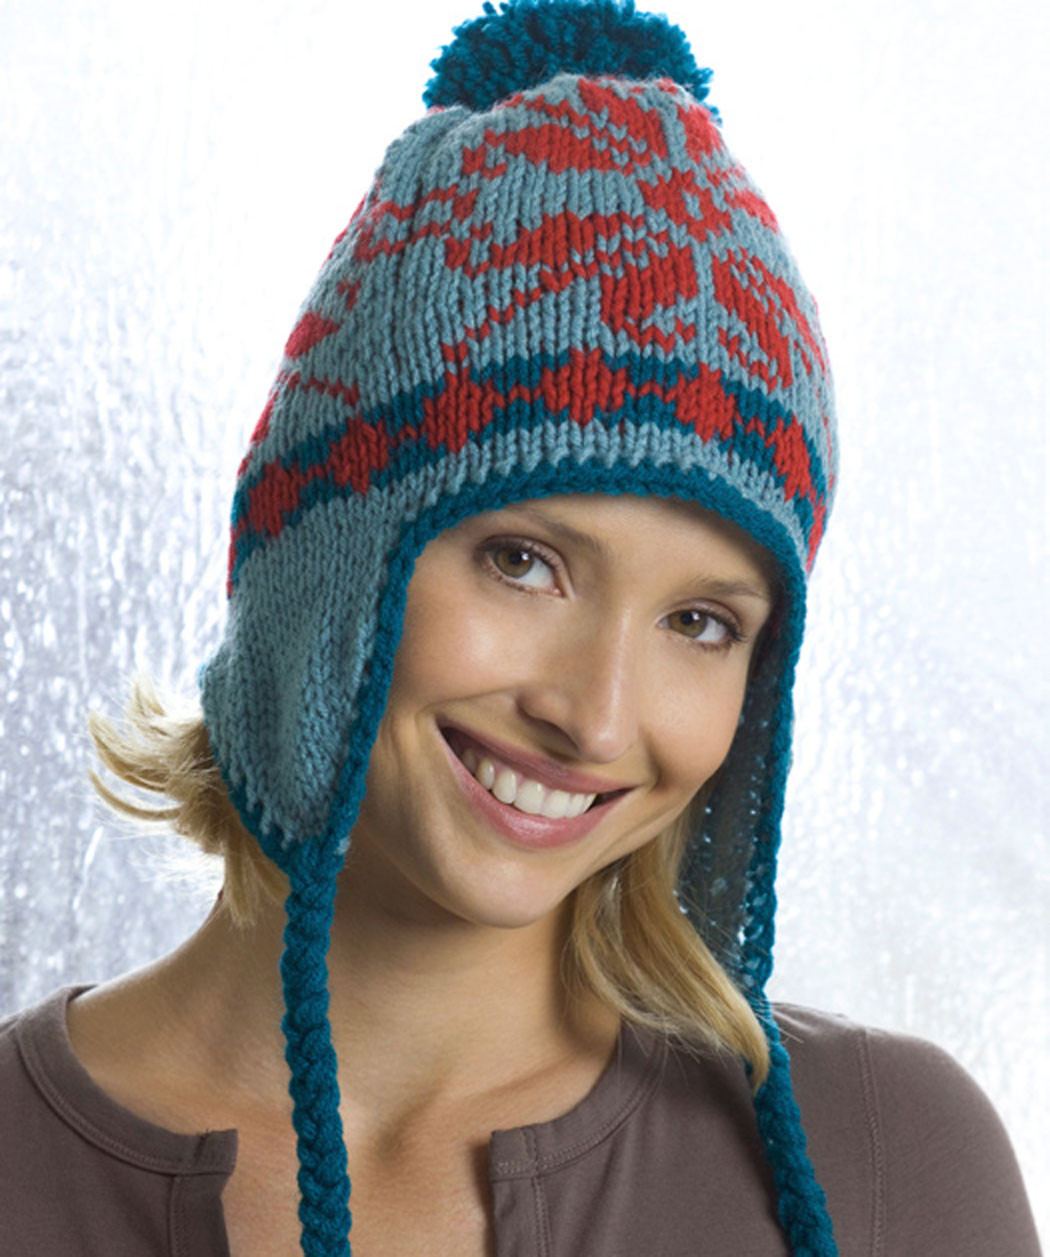 Best Of Earflap Hat Knitting Pattern Knit Hat with Ear Flaps Of Marvelous 50 Pics Knit Hat with Ear Flaps